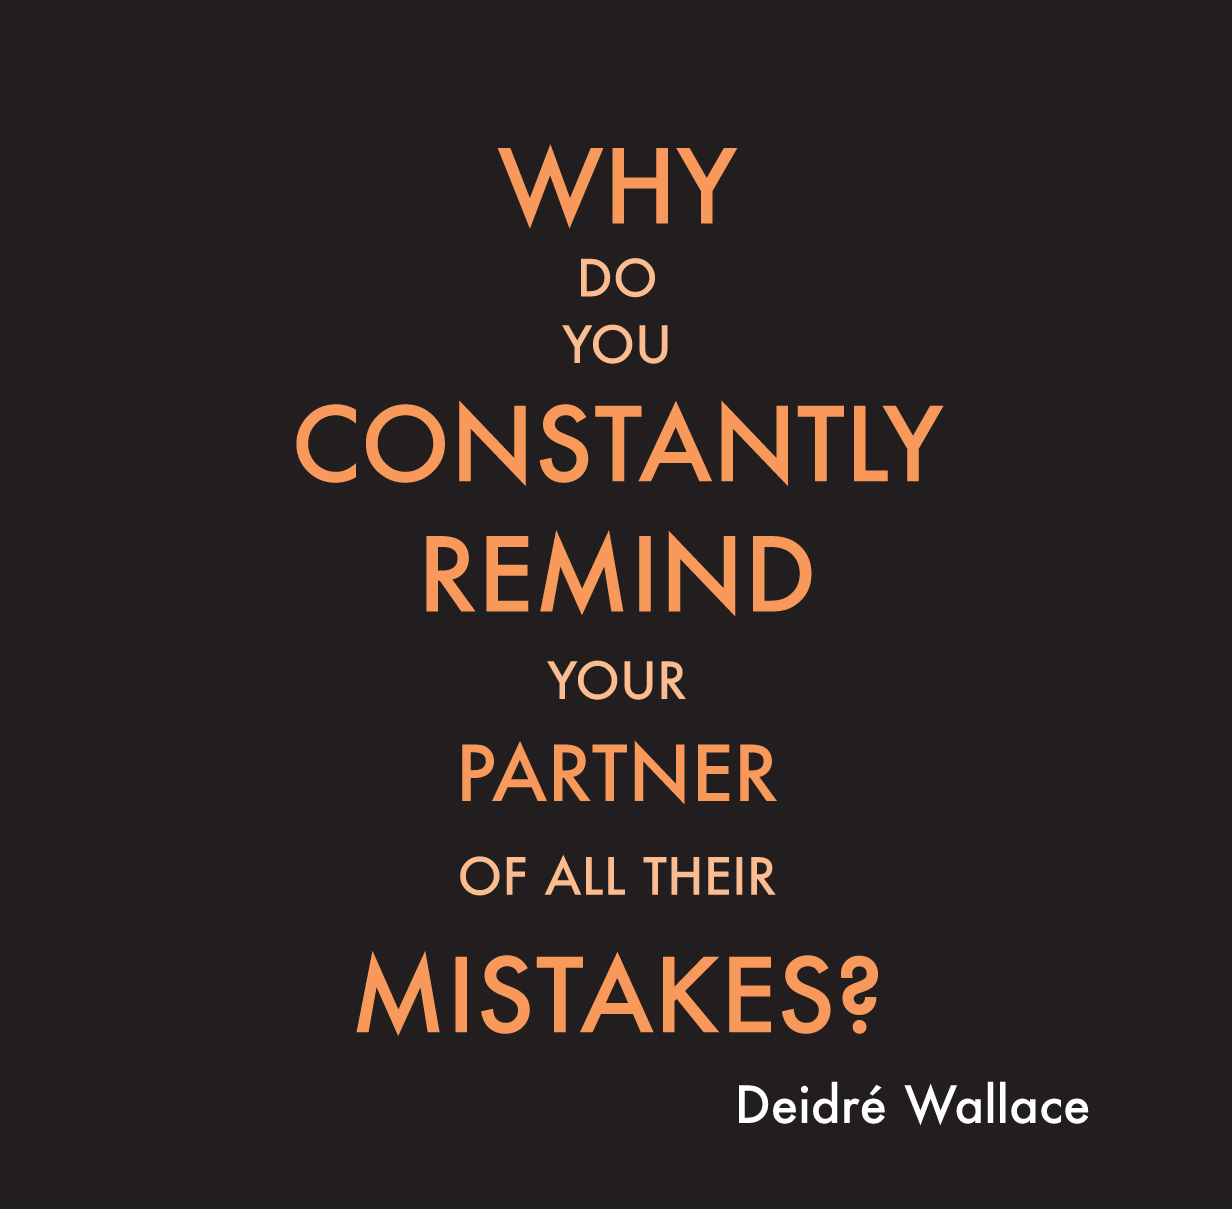 Do not make mistakes in the relationship